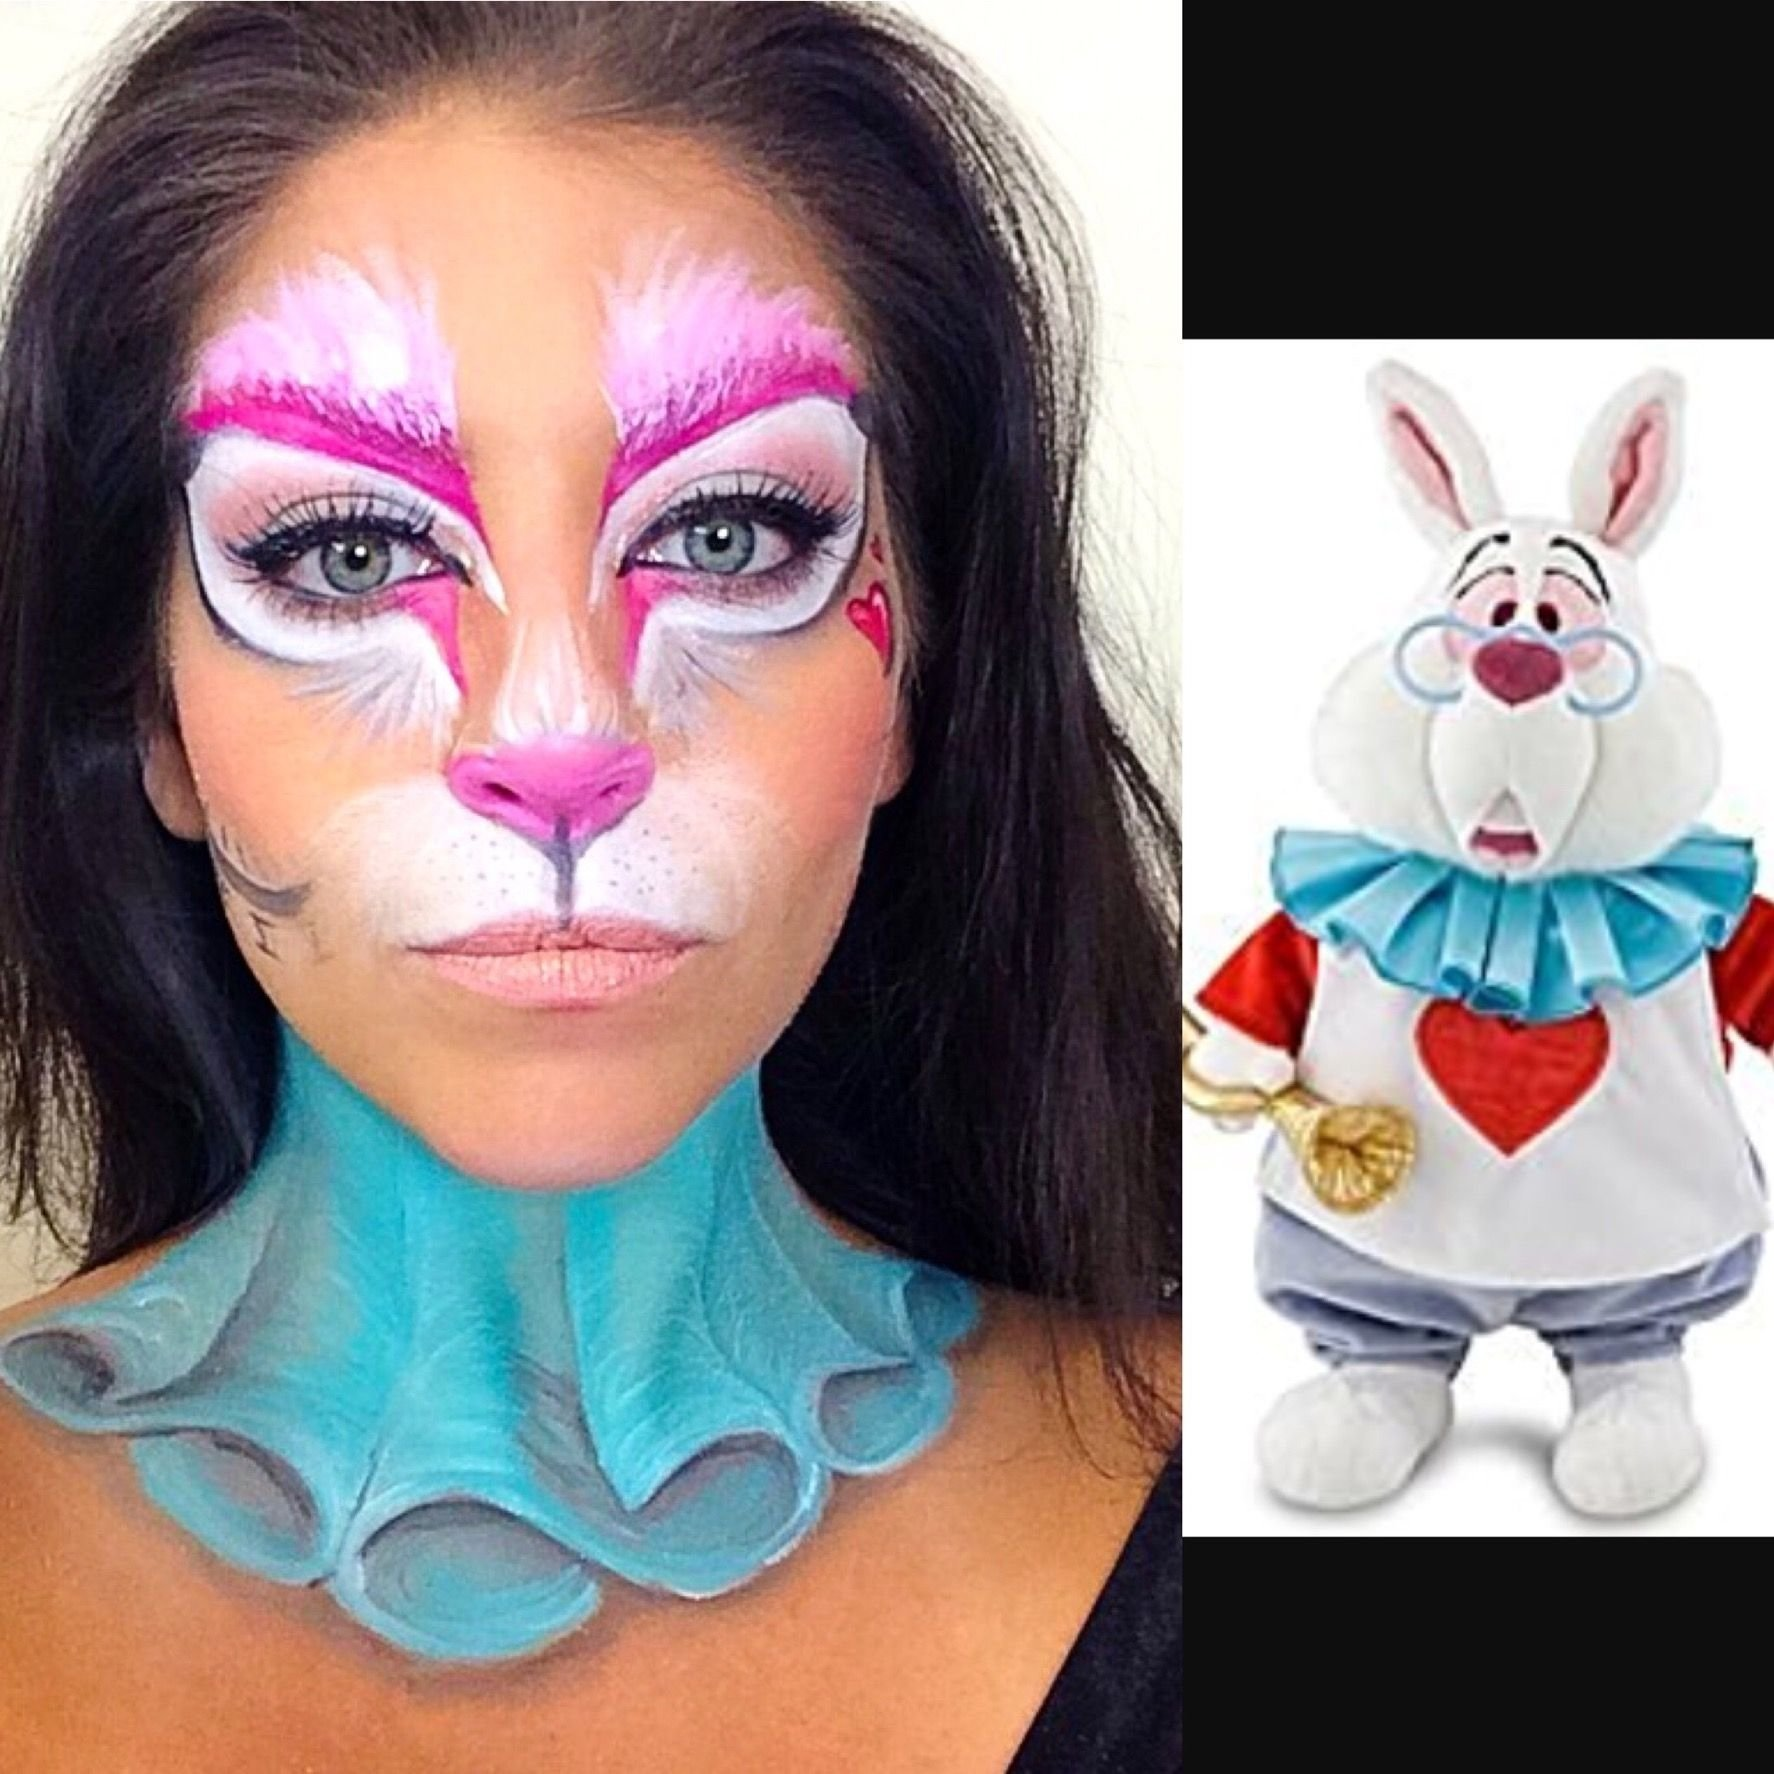 10 Great Alice In Wonderland Makeup Ideas white rabbit fron alice in wonderland makeupalyssa deltorre 2020